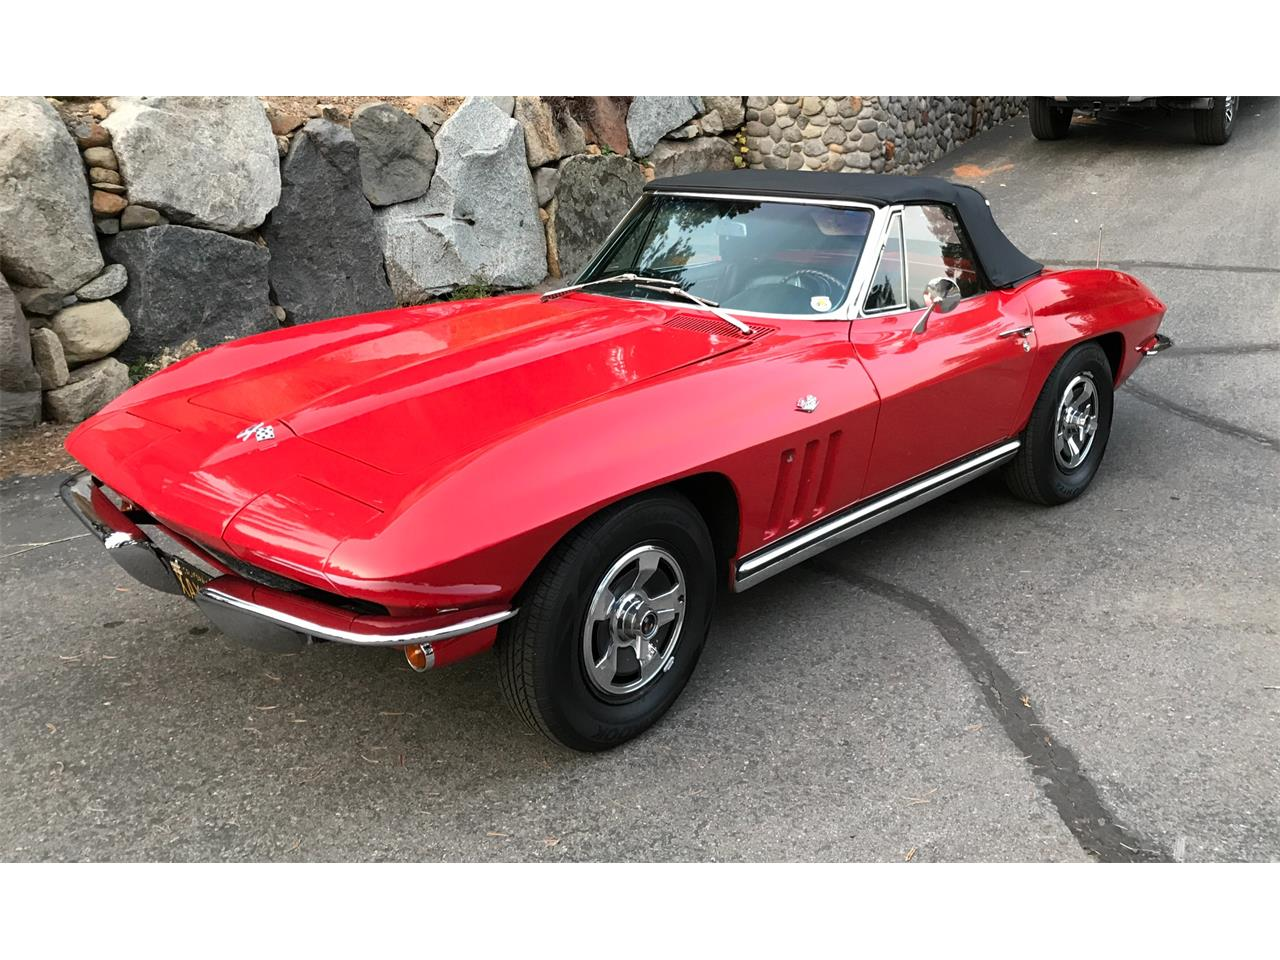 Large Picture of '65 Chevrolet Corvette located in Olympic Valley California Offered by a Private Seller - OH4J